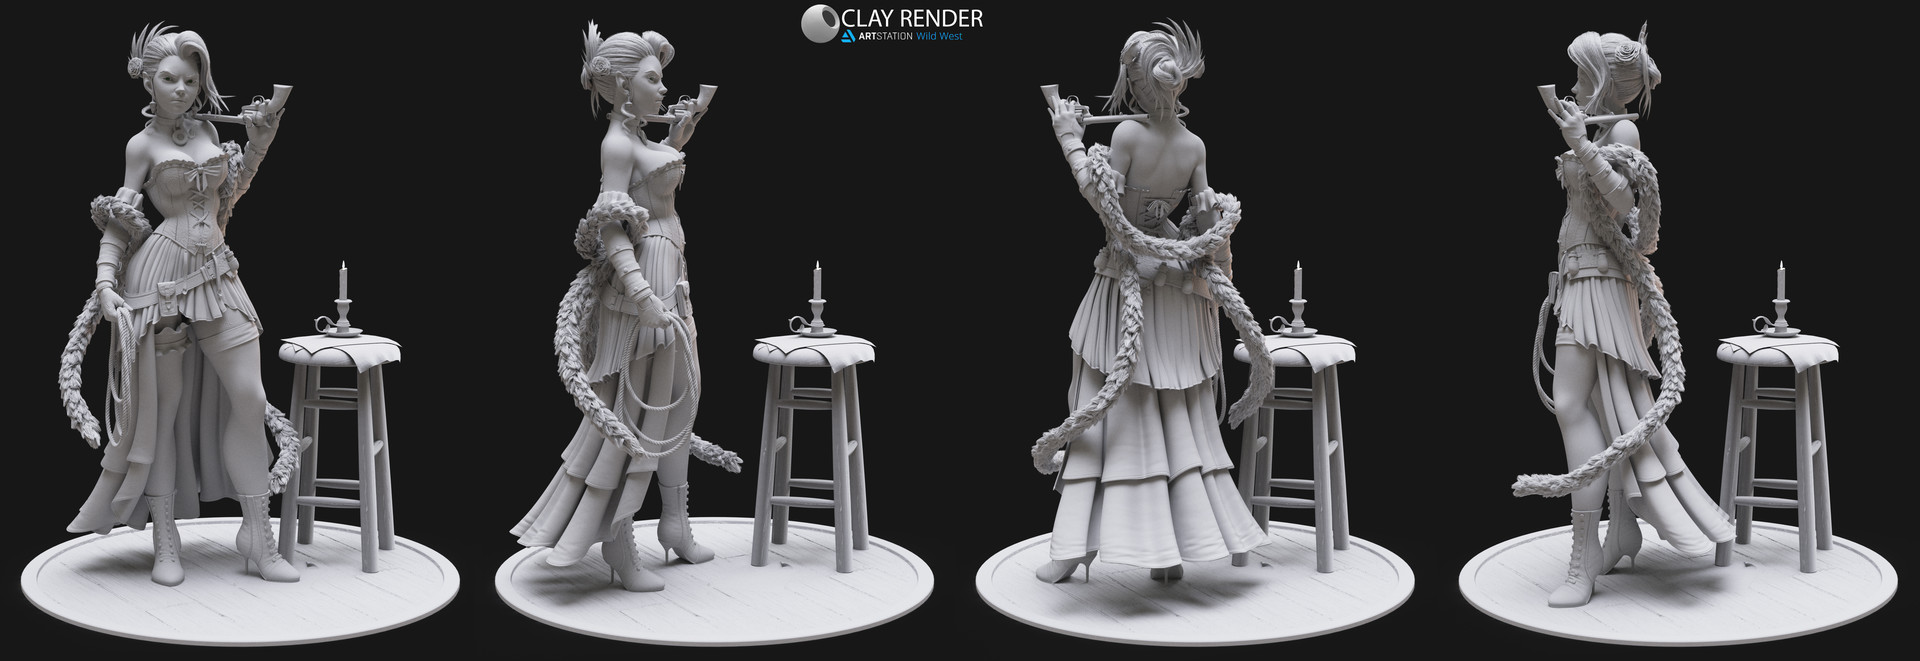 Aditya chauhan final clay render